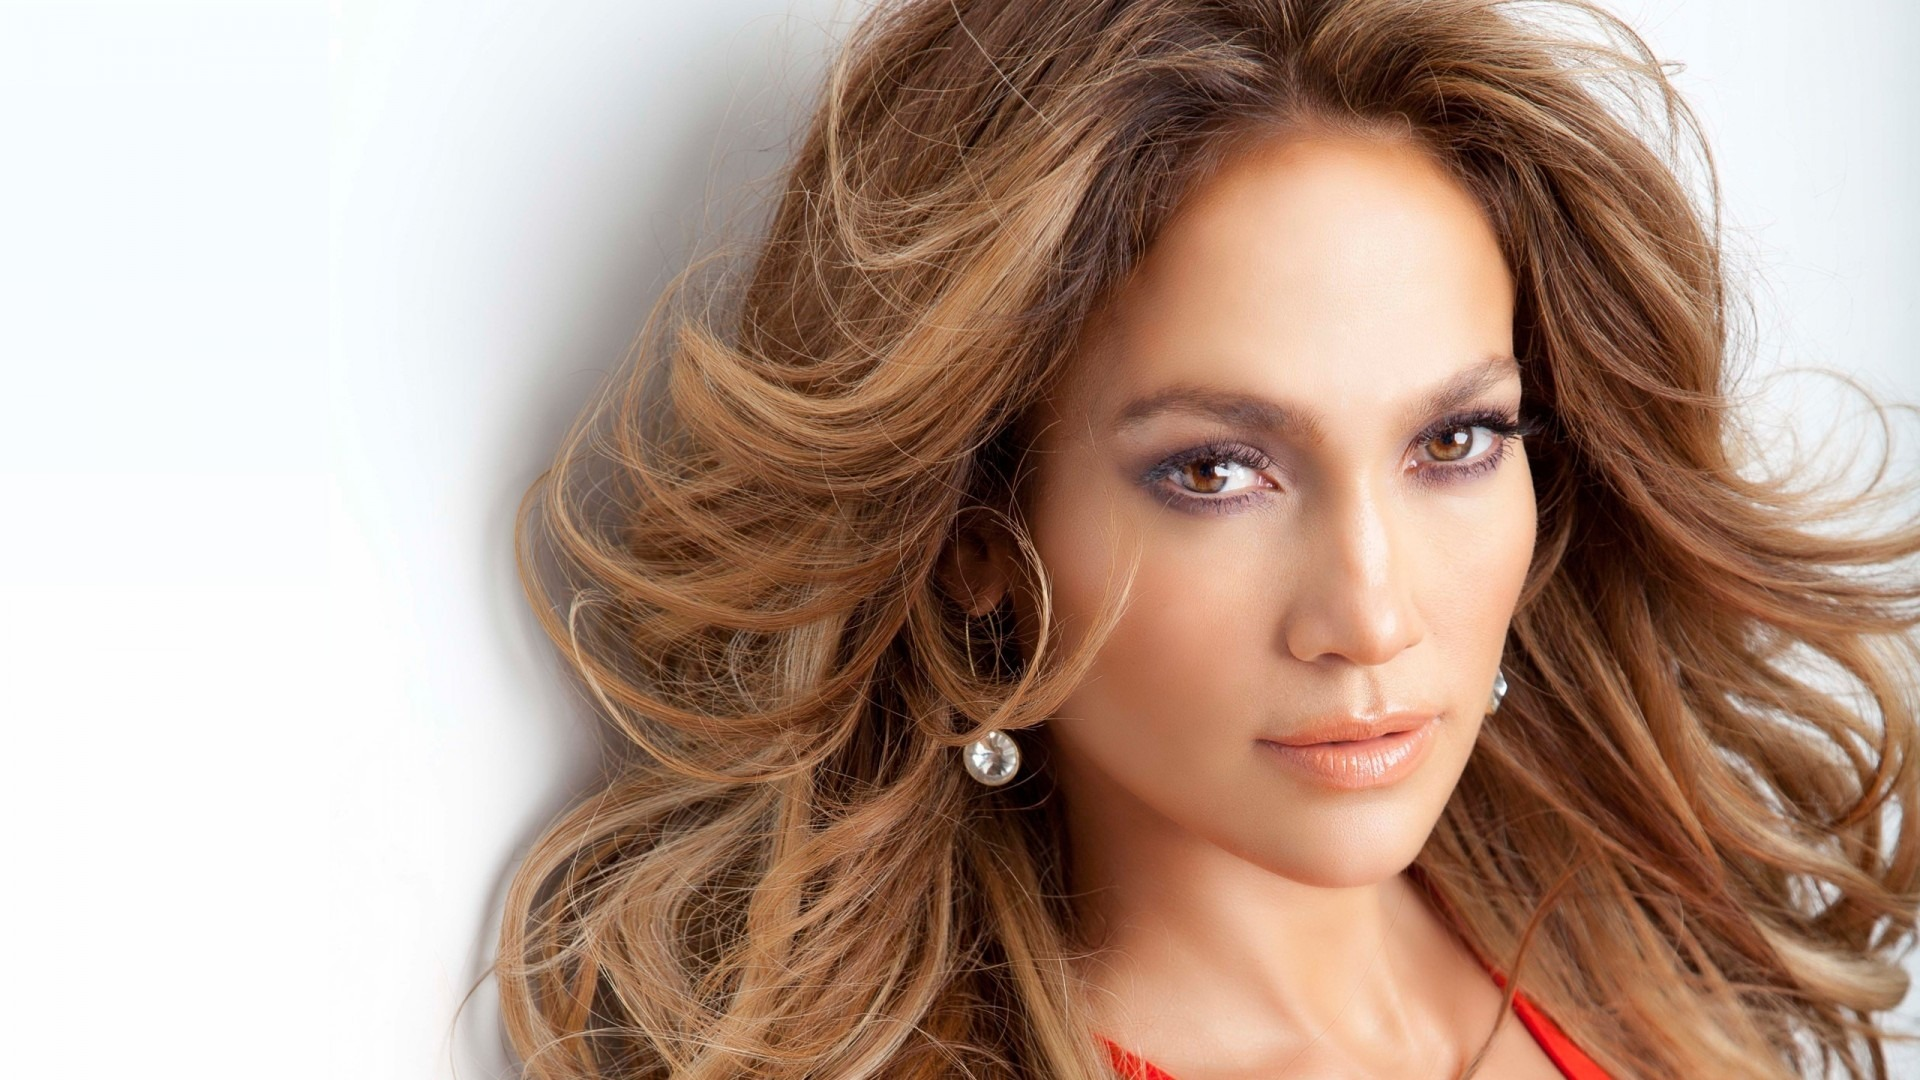 free high definition awesome jennifer lopez pics download